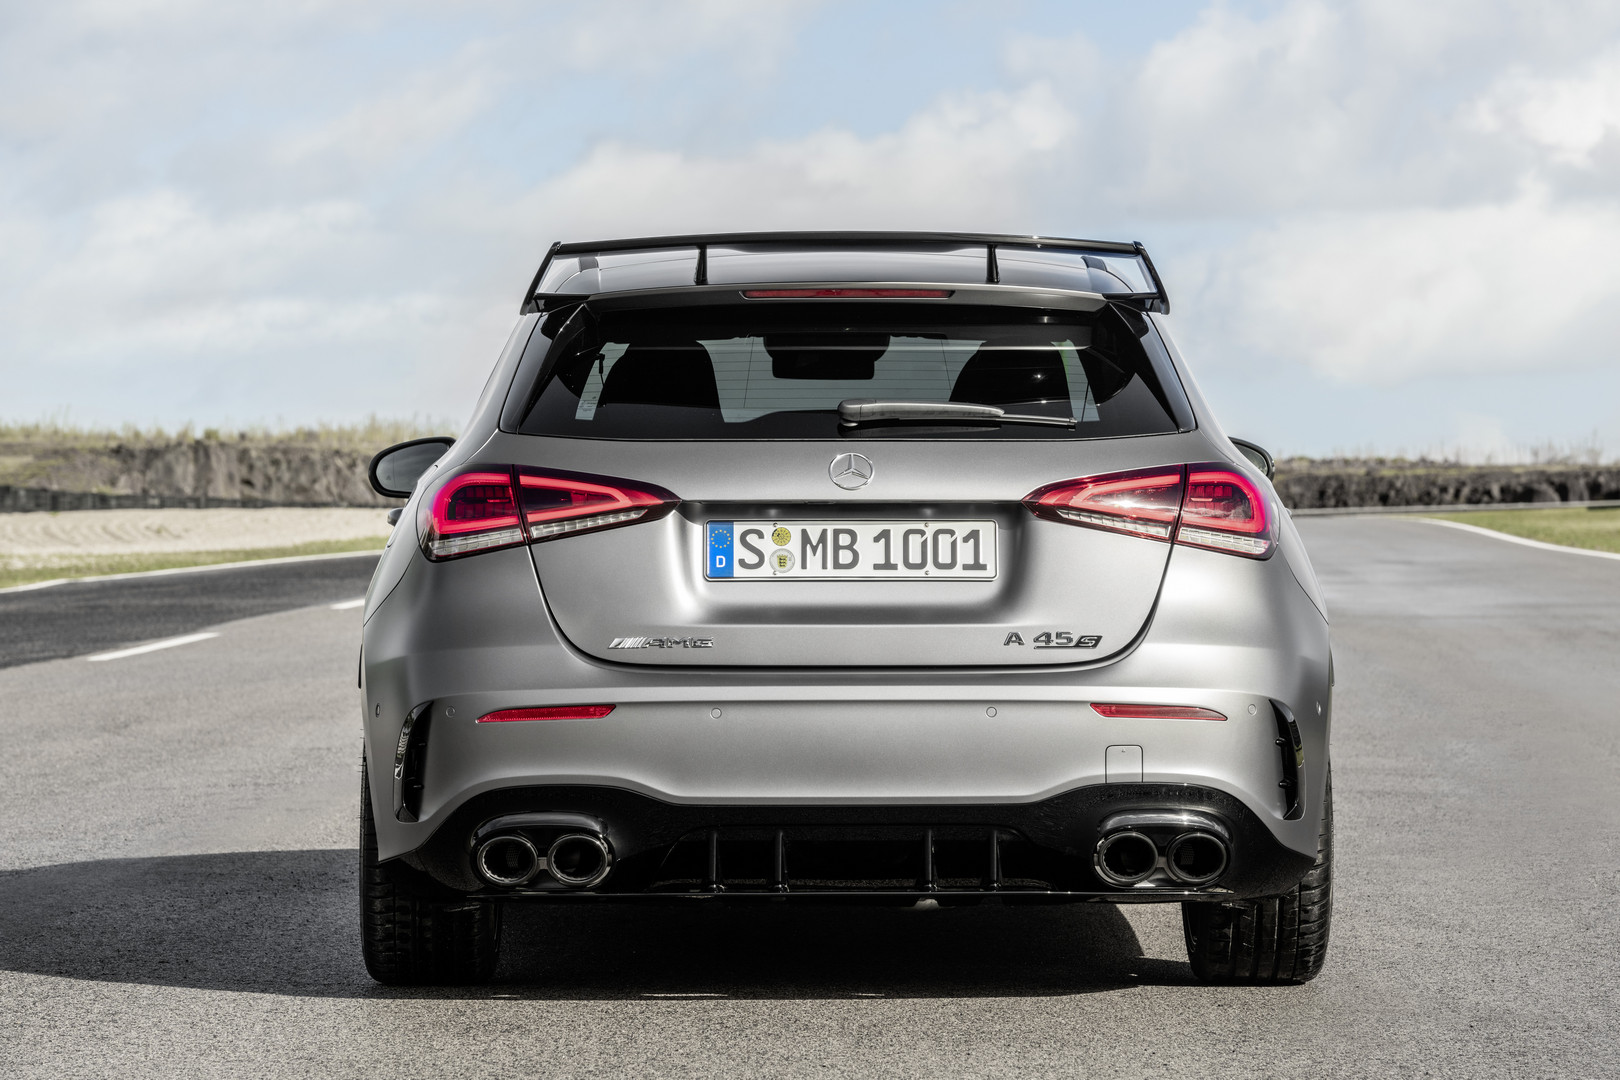 2020 Mercedes-AMG A45 S Rear View